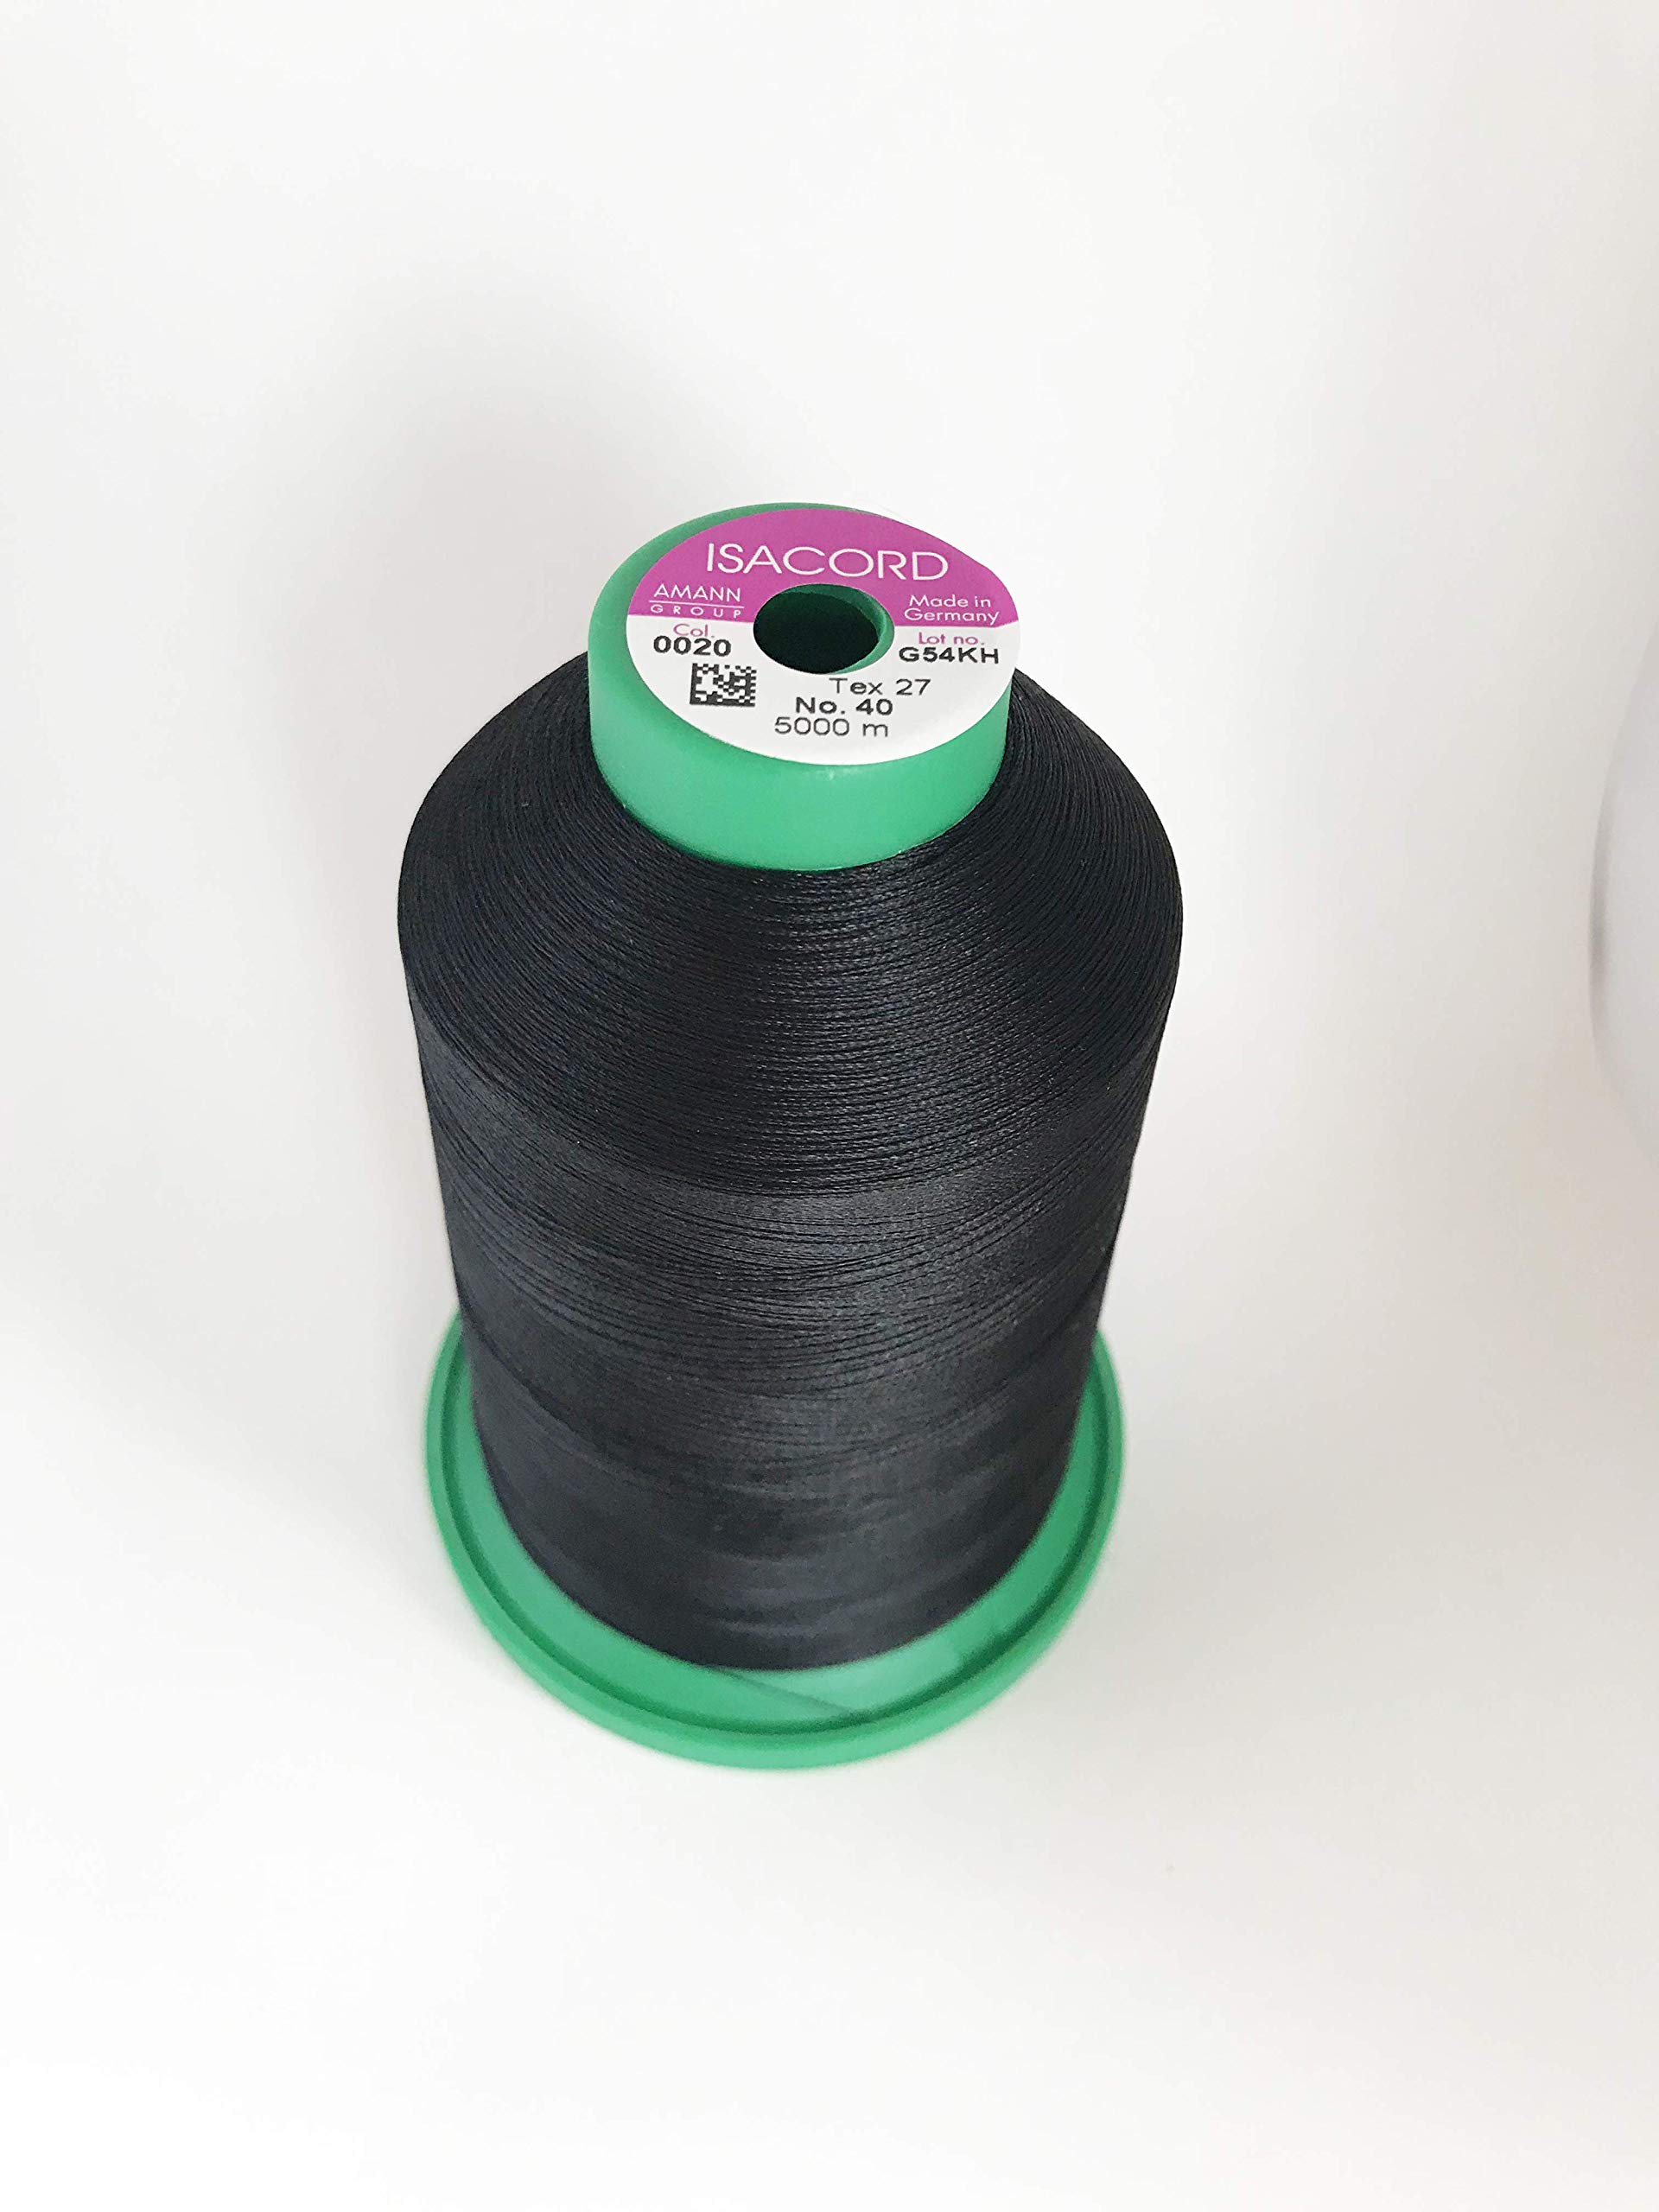 Black Thread 5000M color 0020 Isacord Embroidery Thread